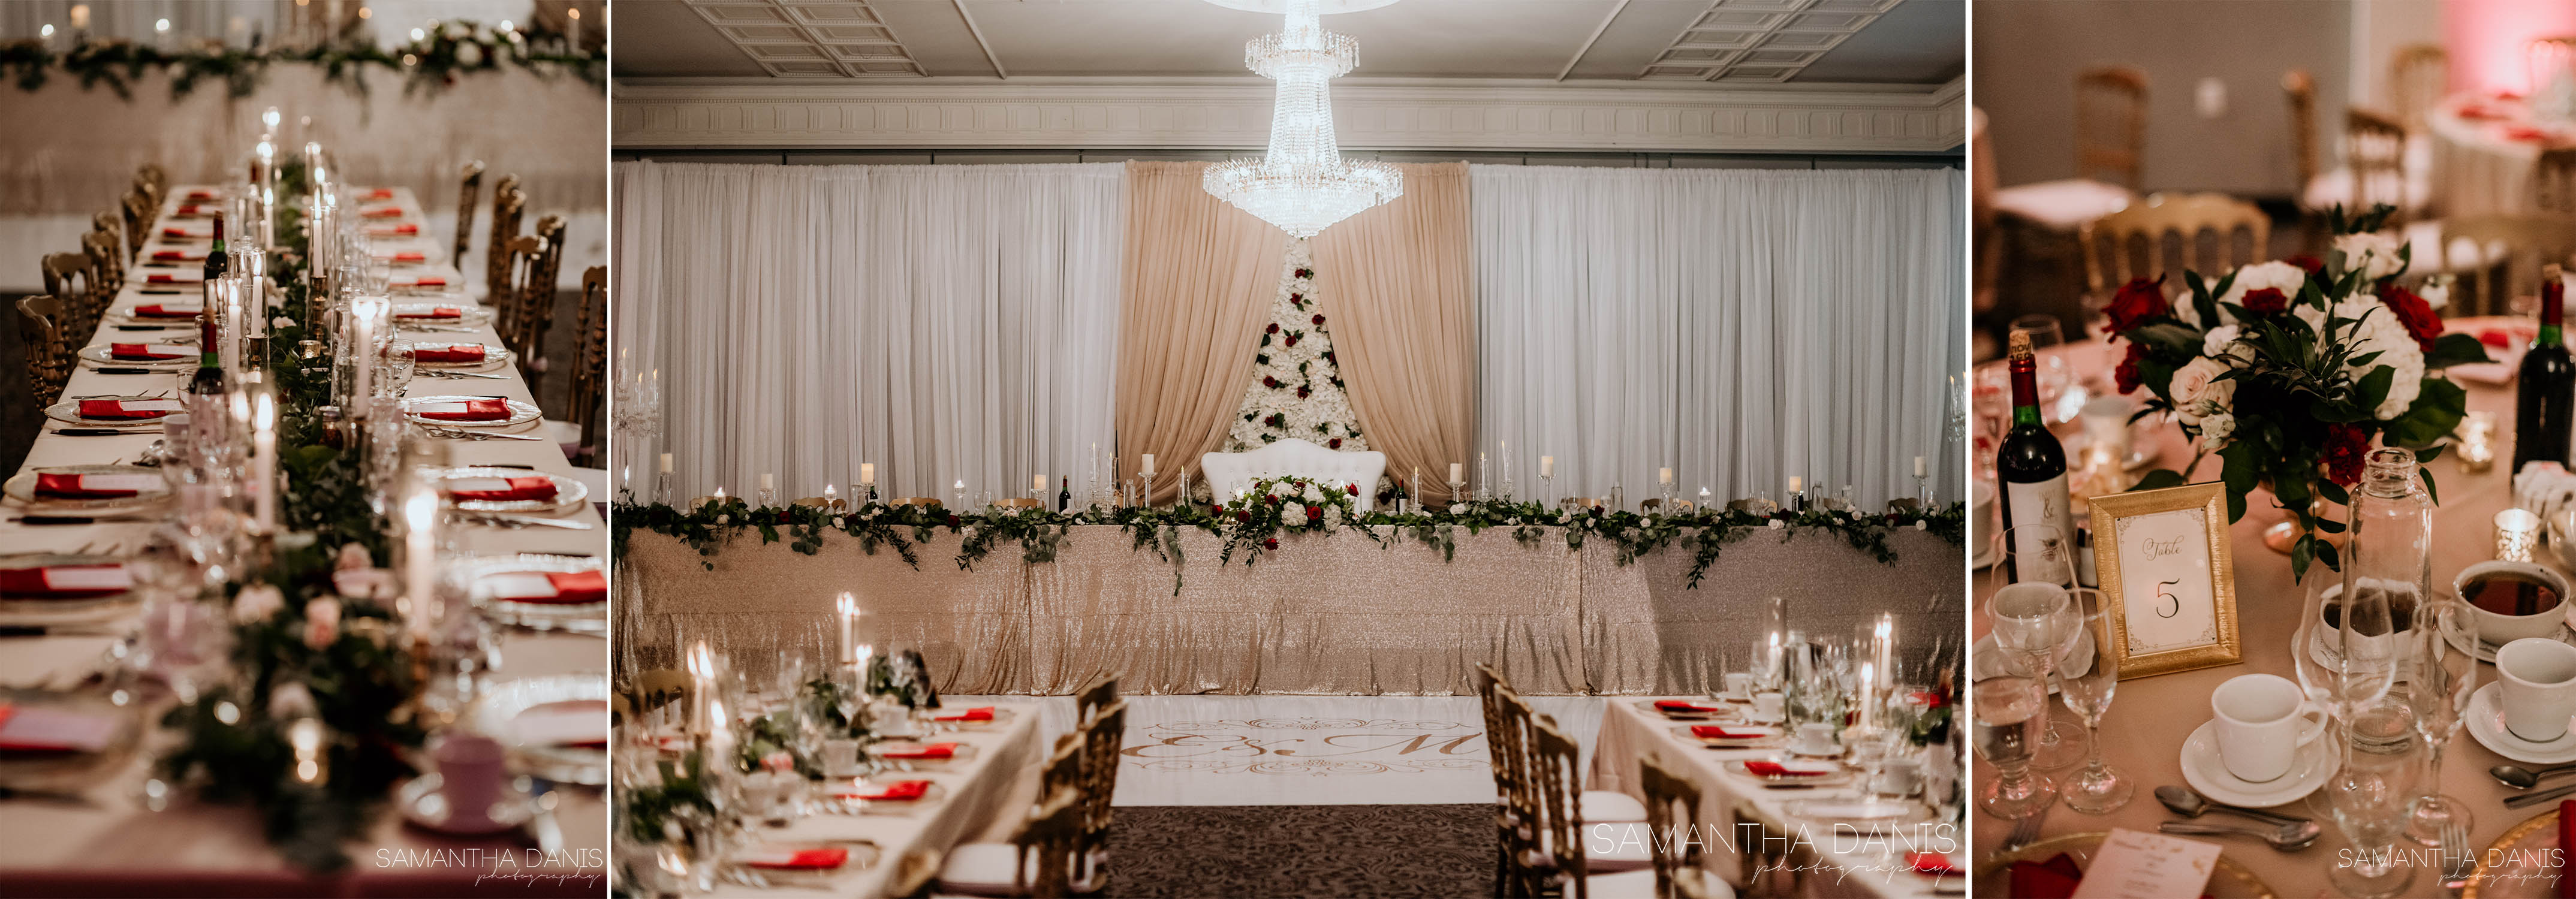 Sala San Marco Ottawa Wedding Samantha Danis Photography